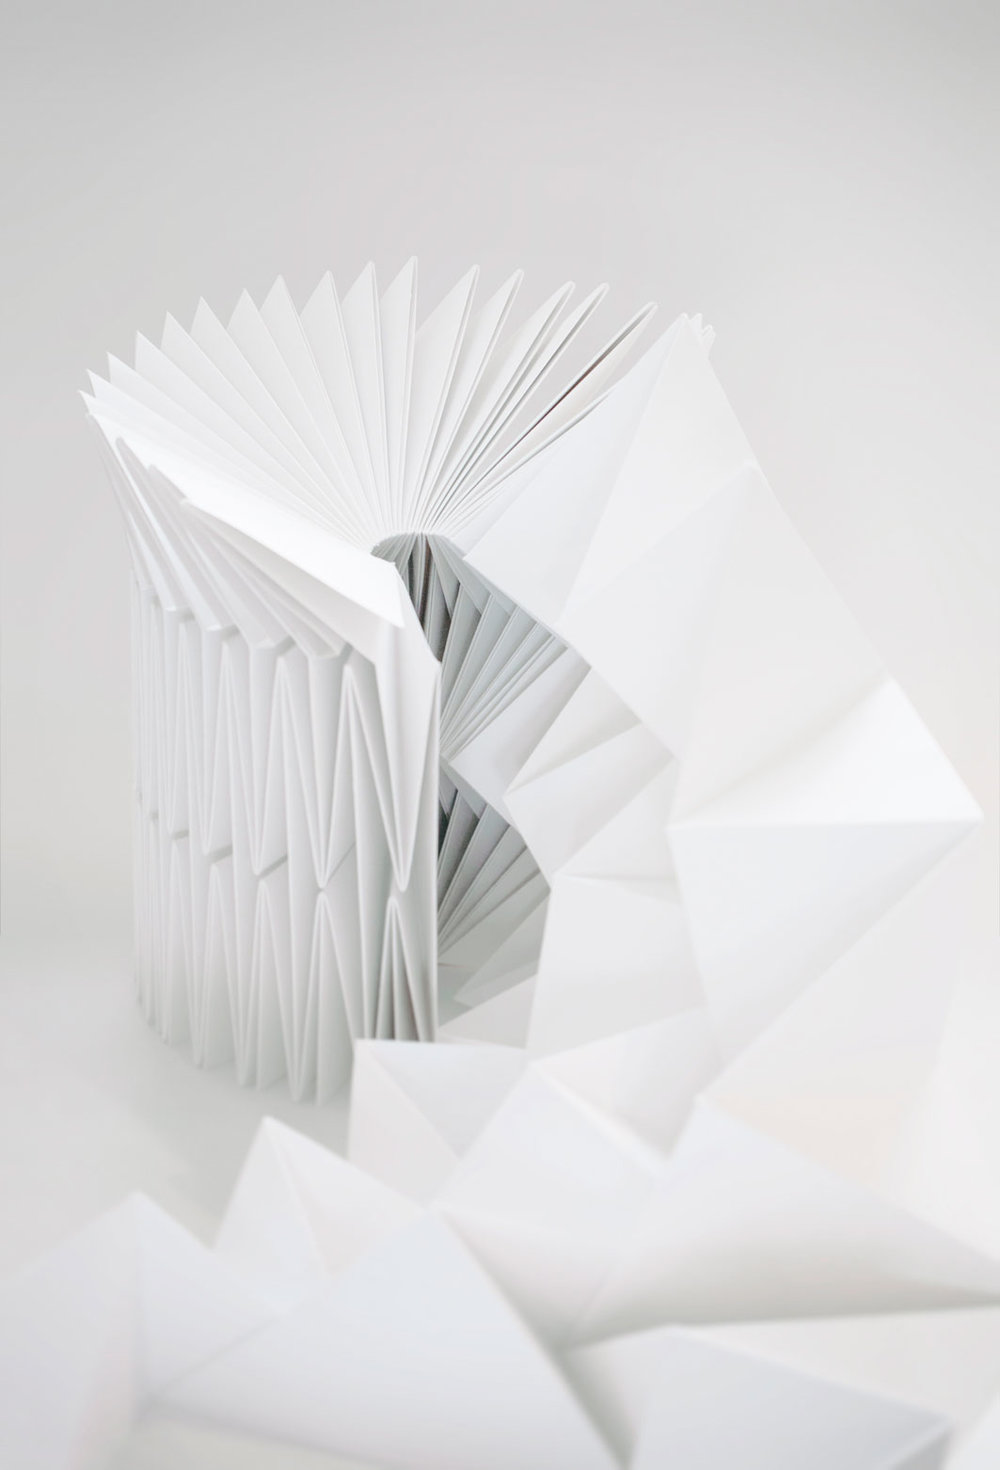 SA seat in paper folded as tessellations‭. ‬Construction interlocks‭. ‬Nine meter handfolded paper‭. ‬2010